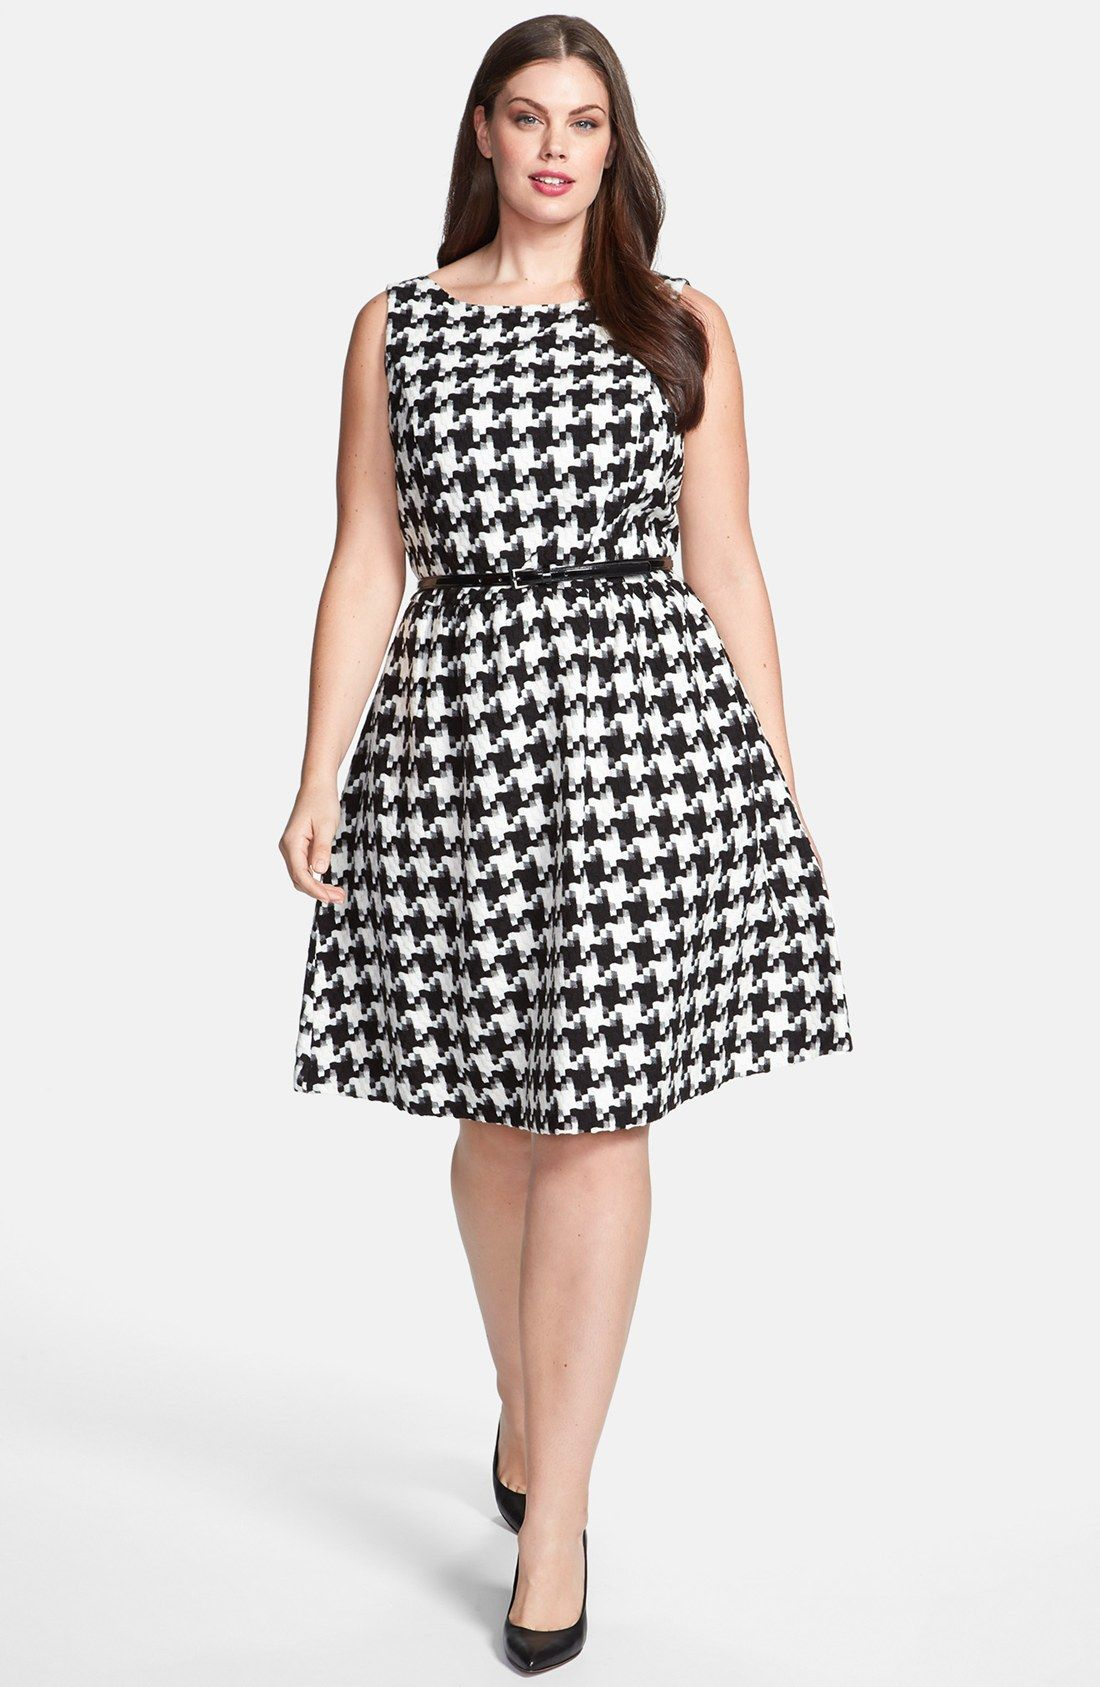 Jessica Simpson Houndstooth Dress Plus Size Nordstrom